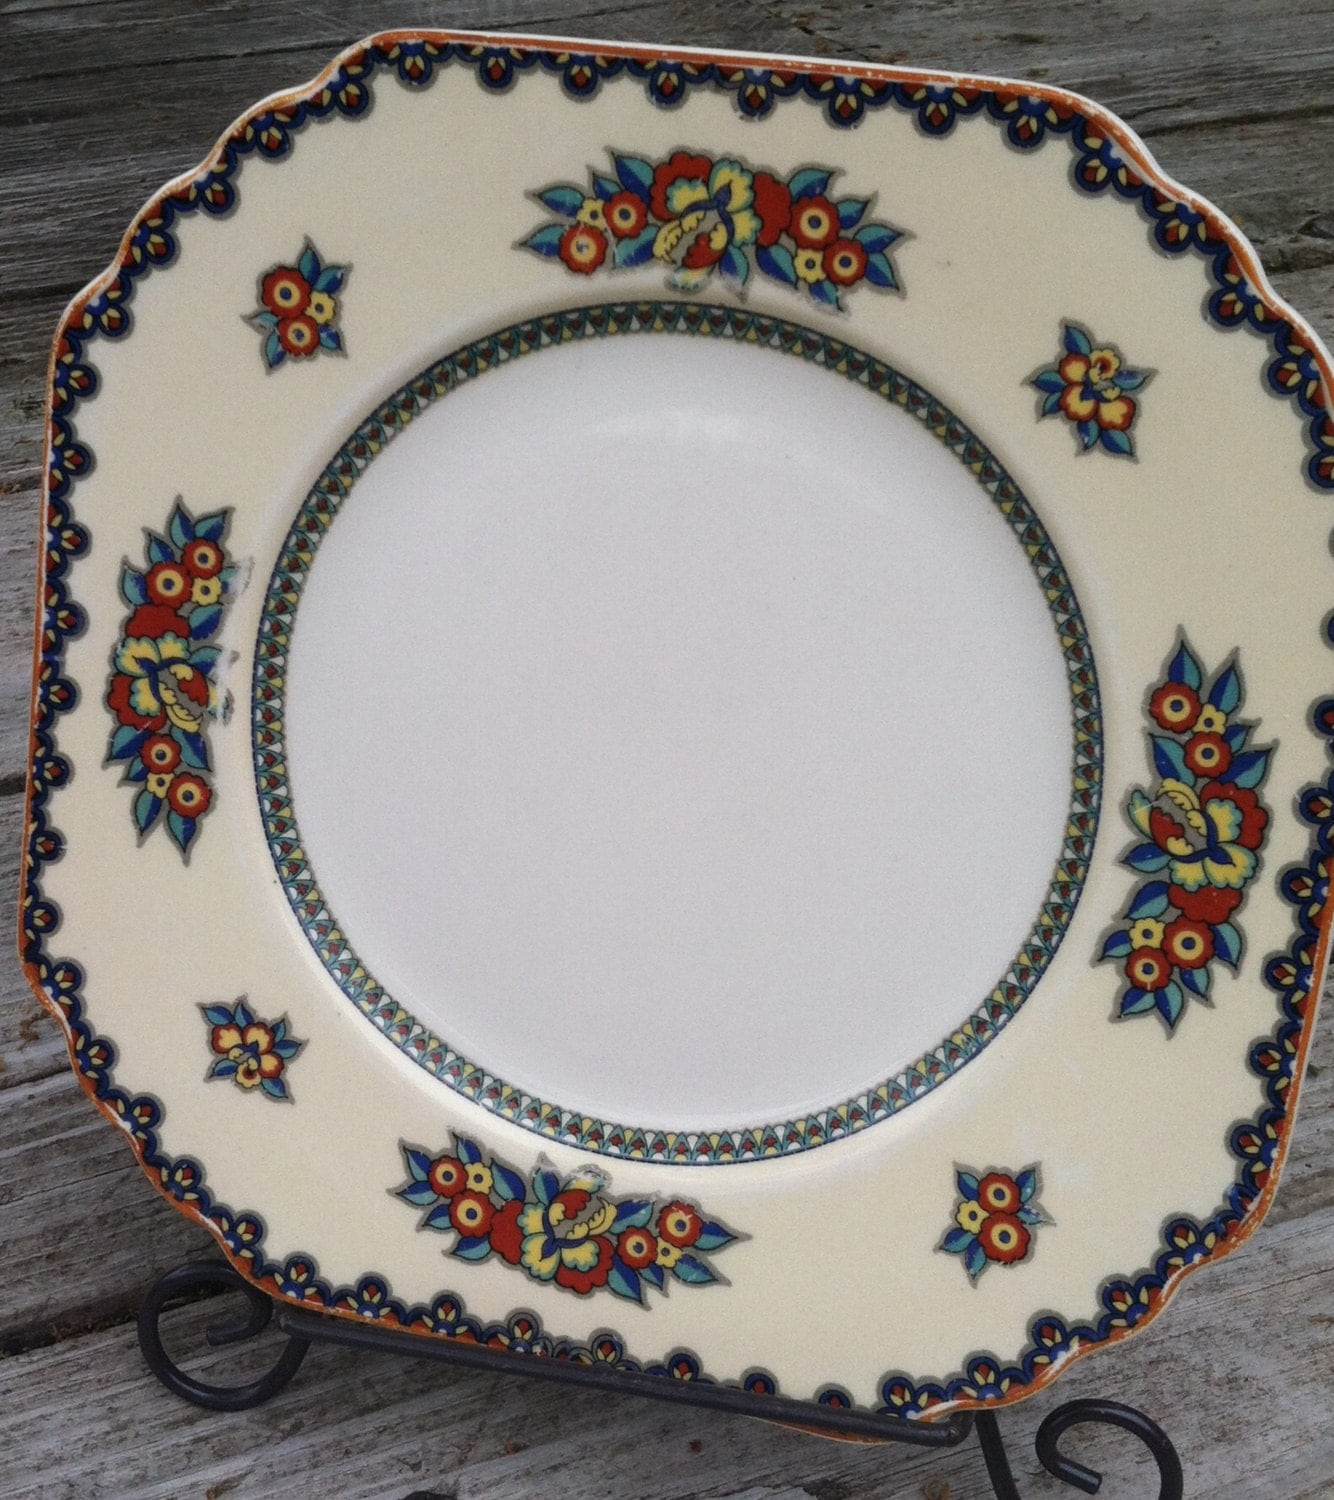 Vintage wedgewood china plate manchu pattern made in england Wedgewood designs